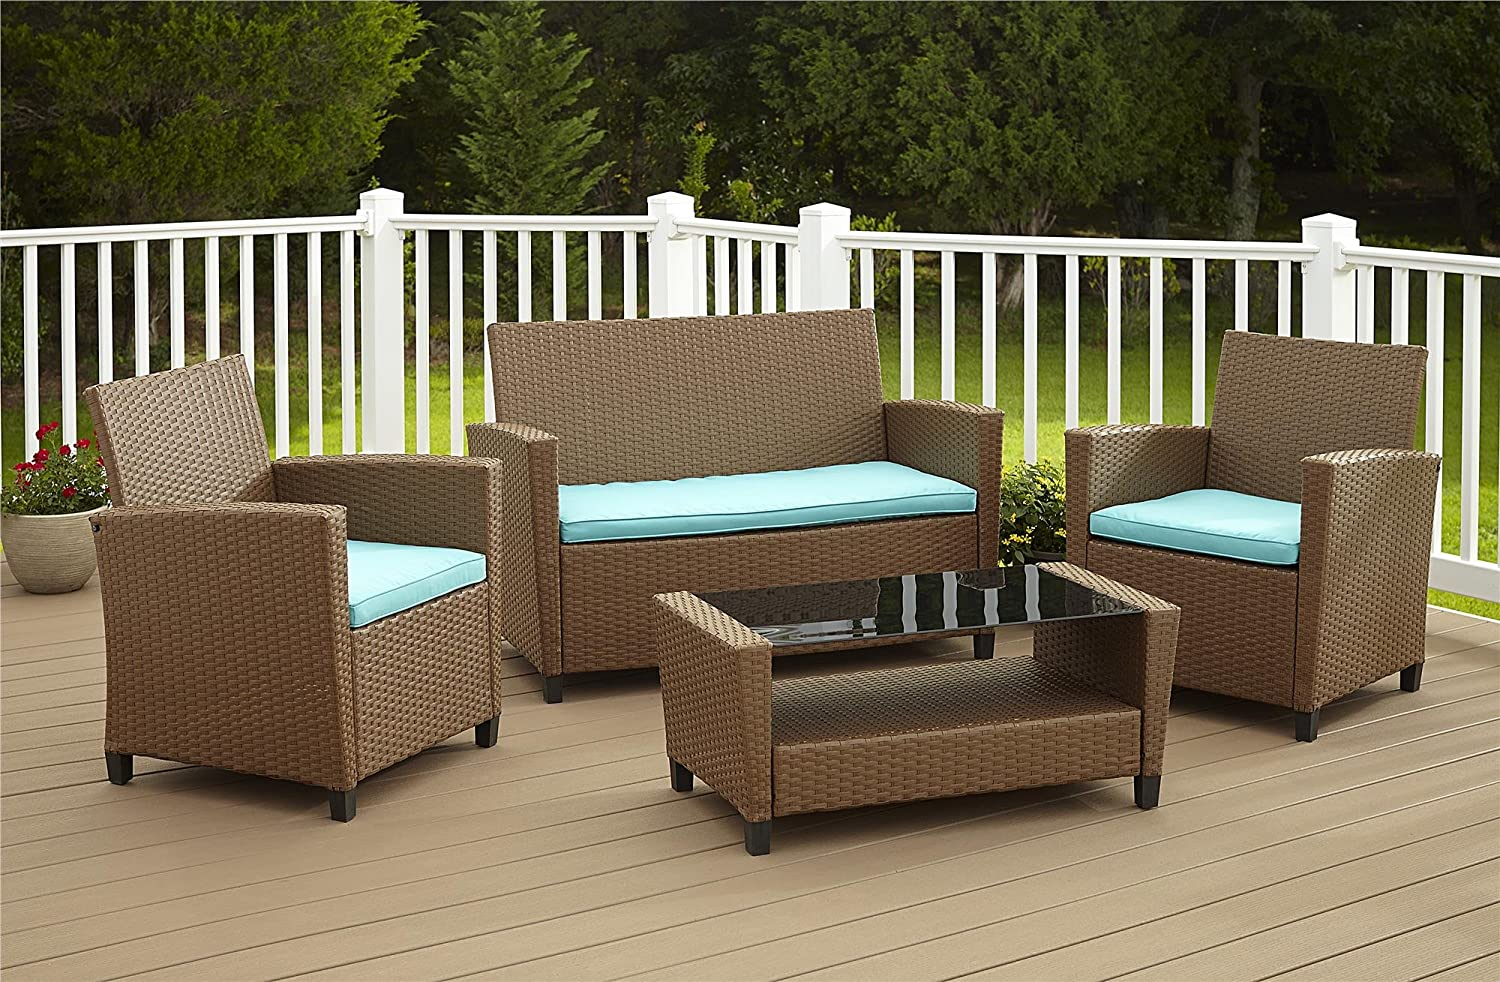 Outdoor Living Spaces Ideas-Enjoy Your Space For Relaxing ... on Living Spaces Patio Set id=28475